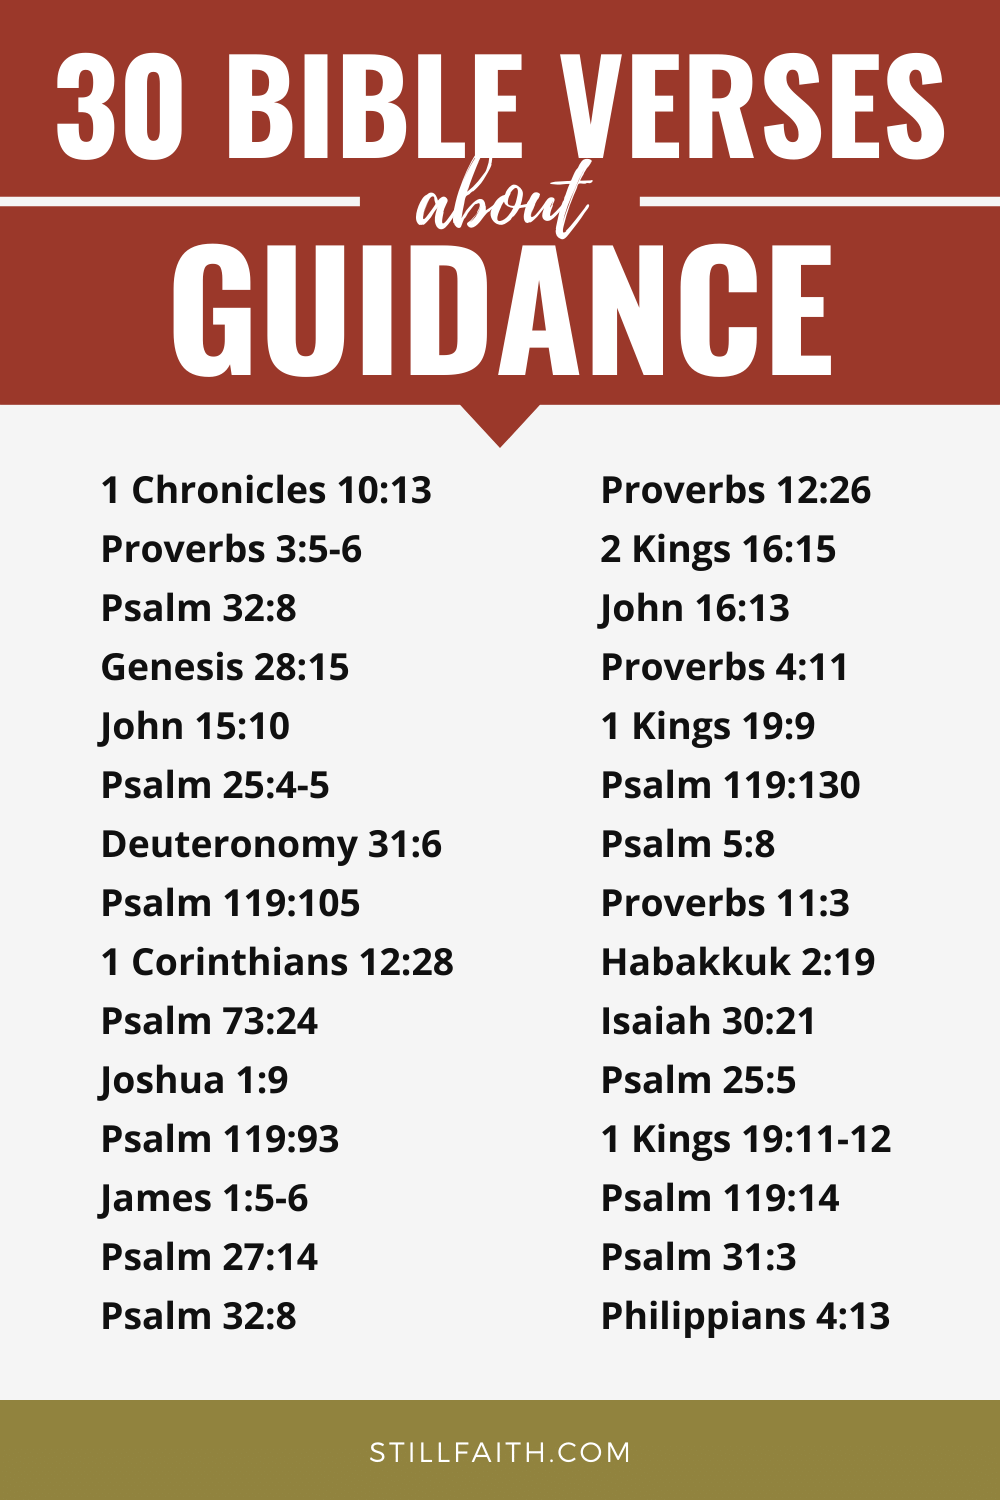 206 Bible Verses about Guidance